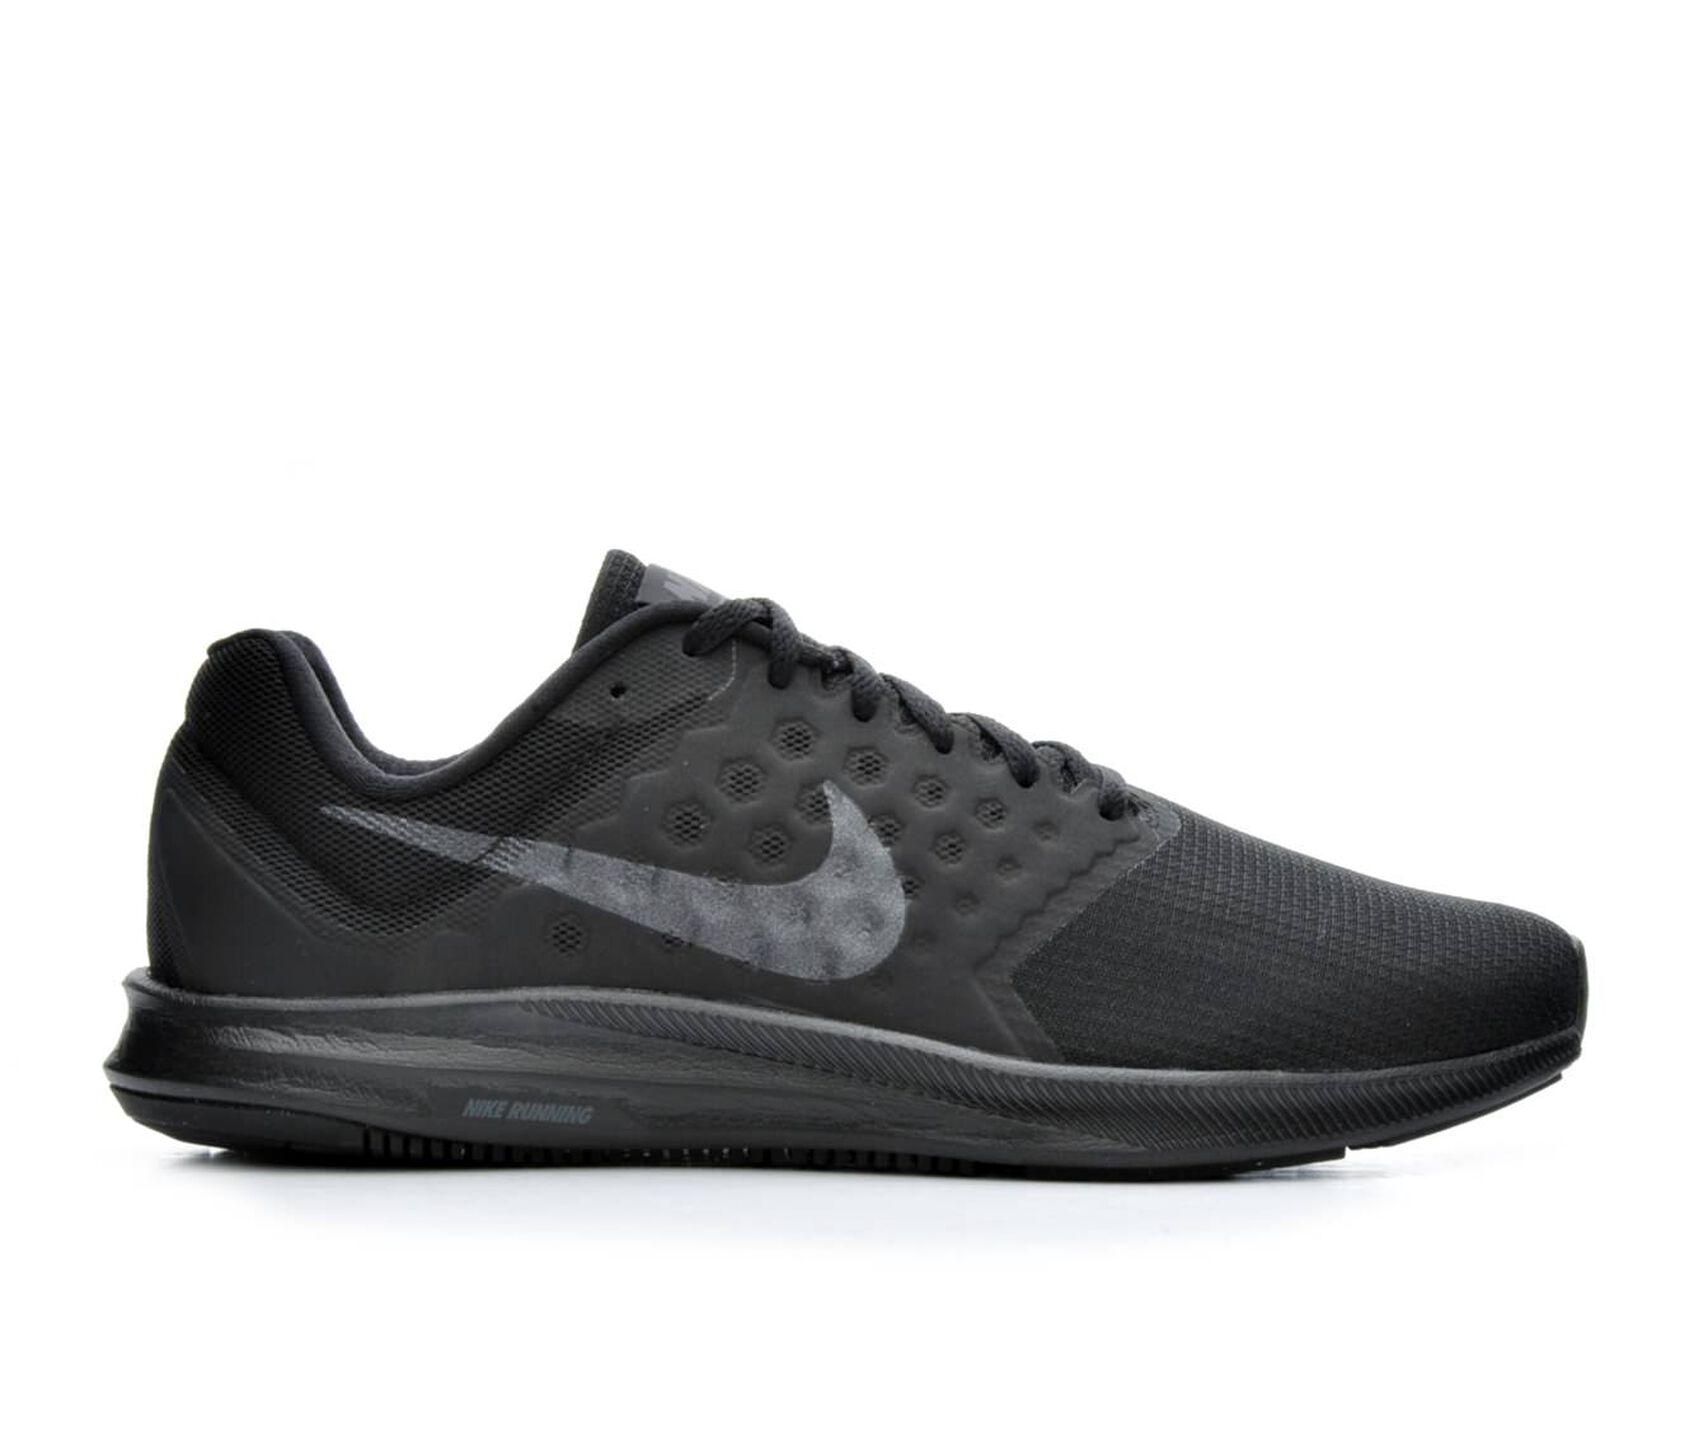 s nike downshifter 7 running shoes